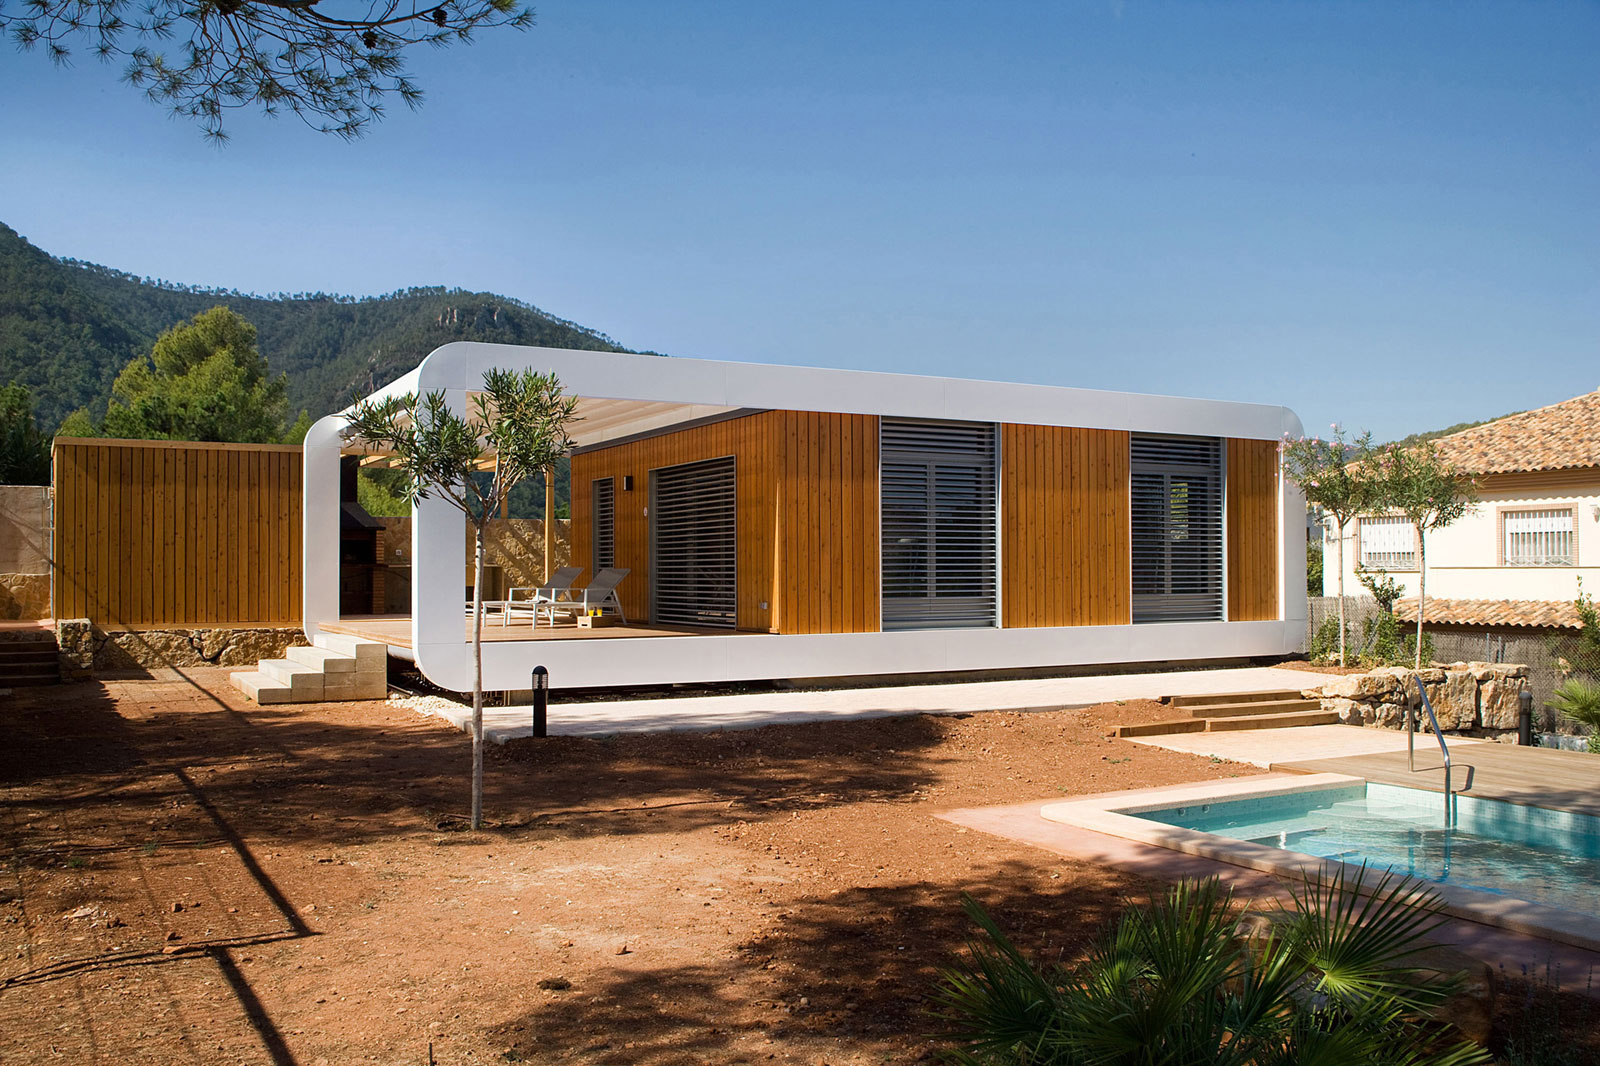 Eco-Friendly and Energy Efficiency with Mobile Device Control of El Refugio Inteligente by NOEM-03